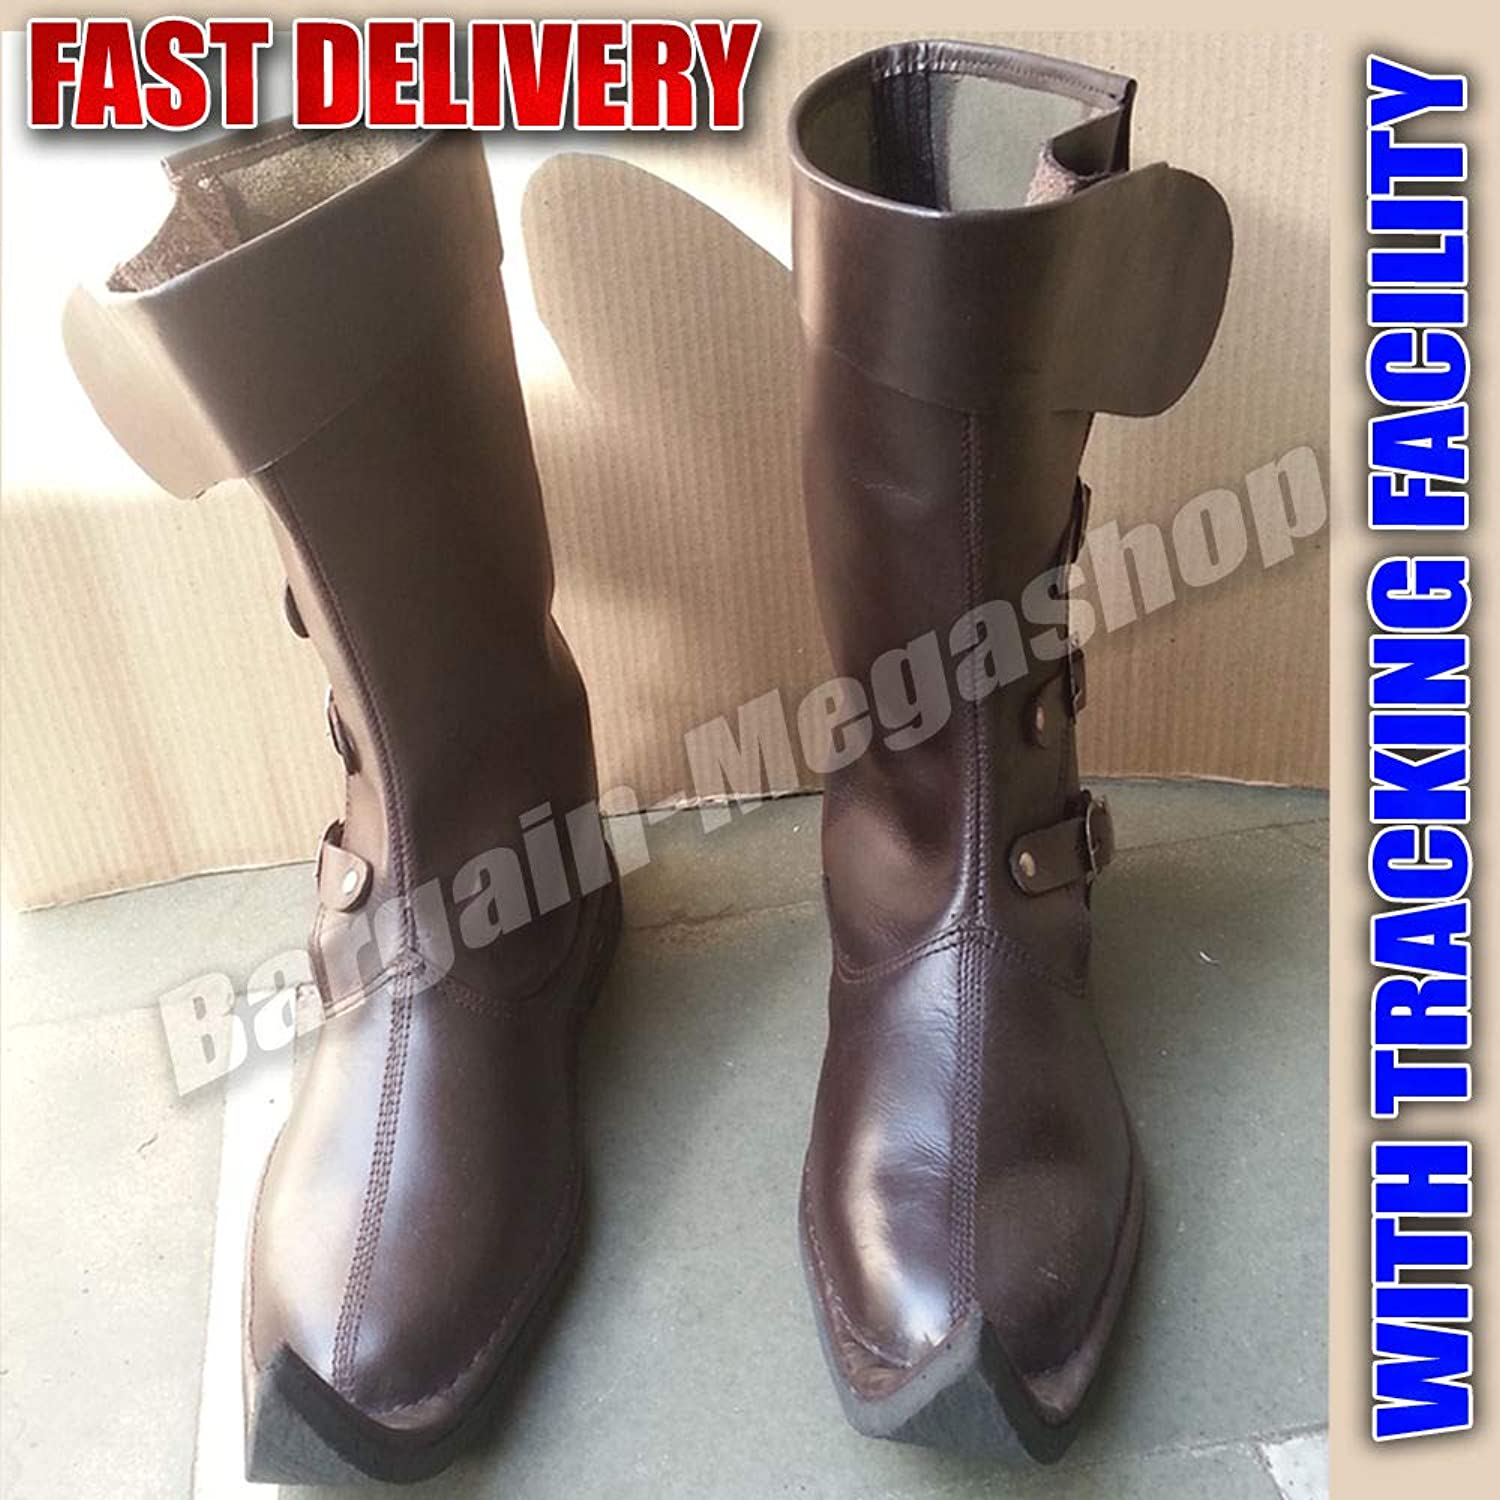 Uniquewonderitems Riato Fame Designer Medieval Leather Boots Brown Reenactment Mens shoes Pirate Role Play Boot